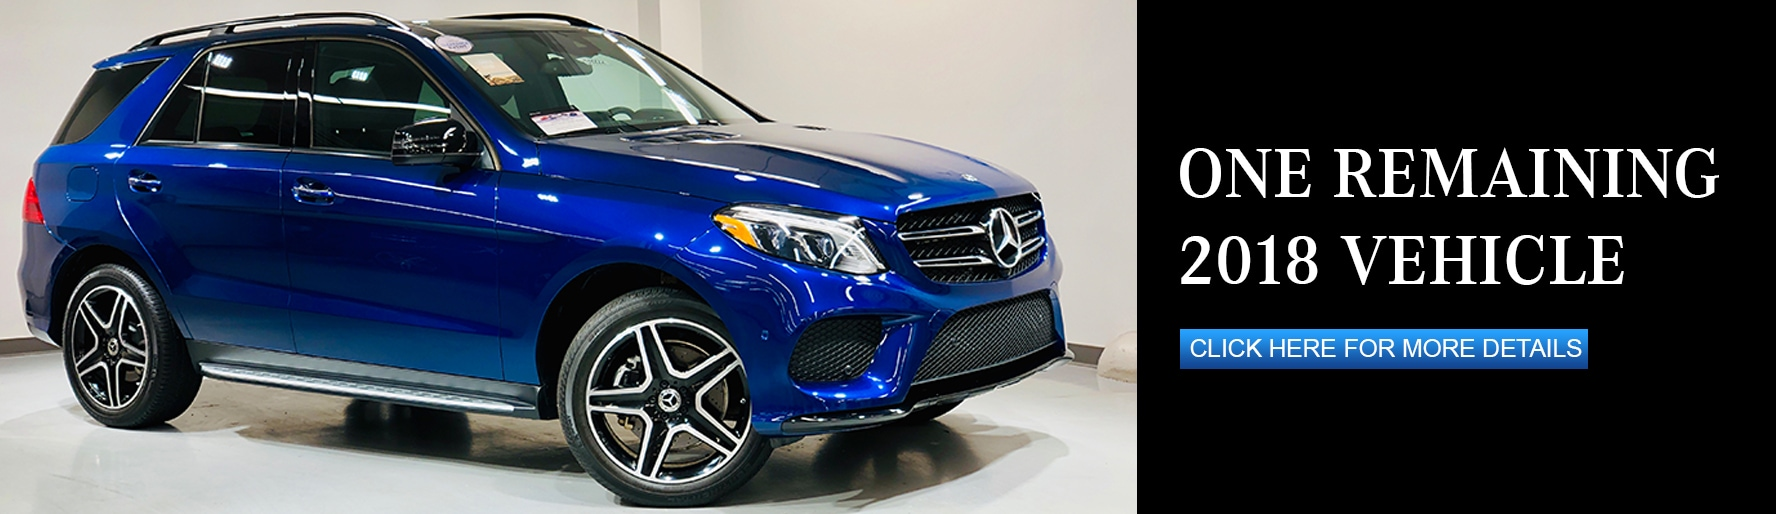 Mercedes-Benz of Pittsburgh | Bobby Rahal Automotive Group serving